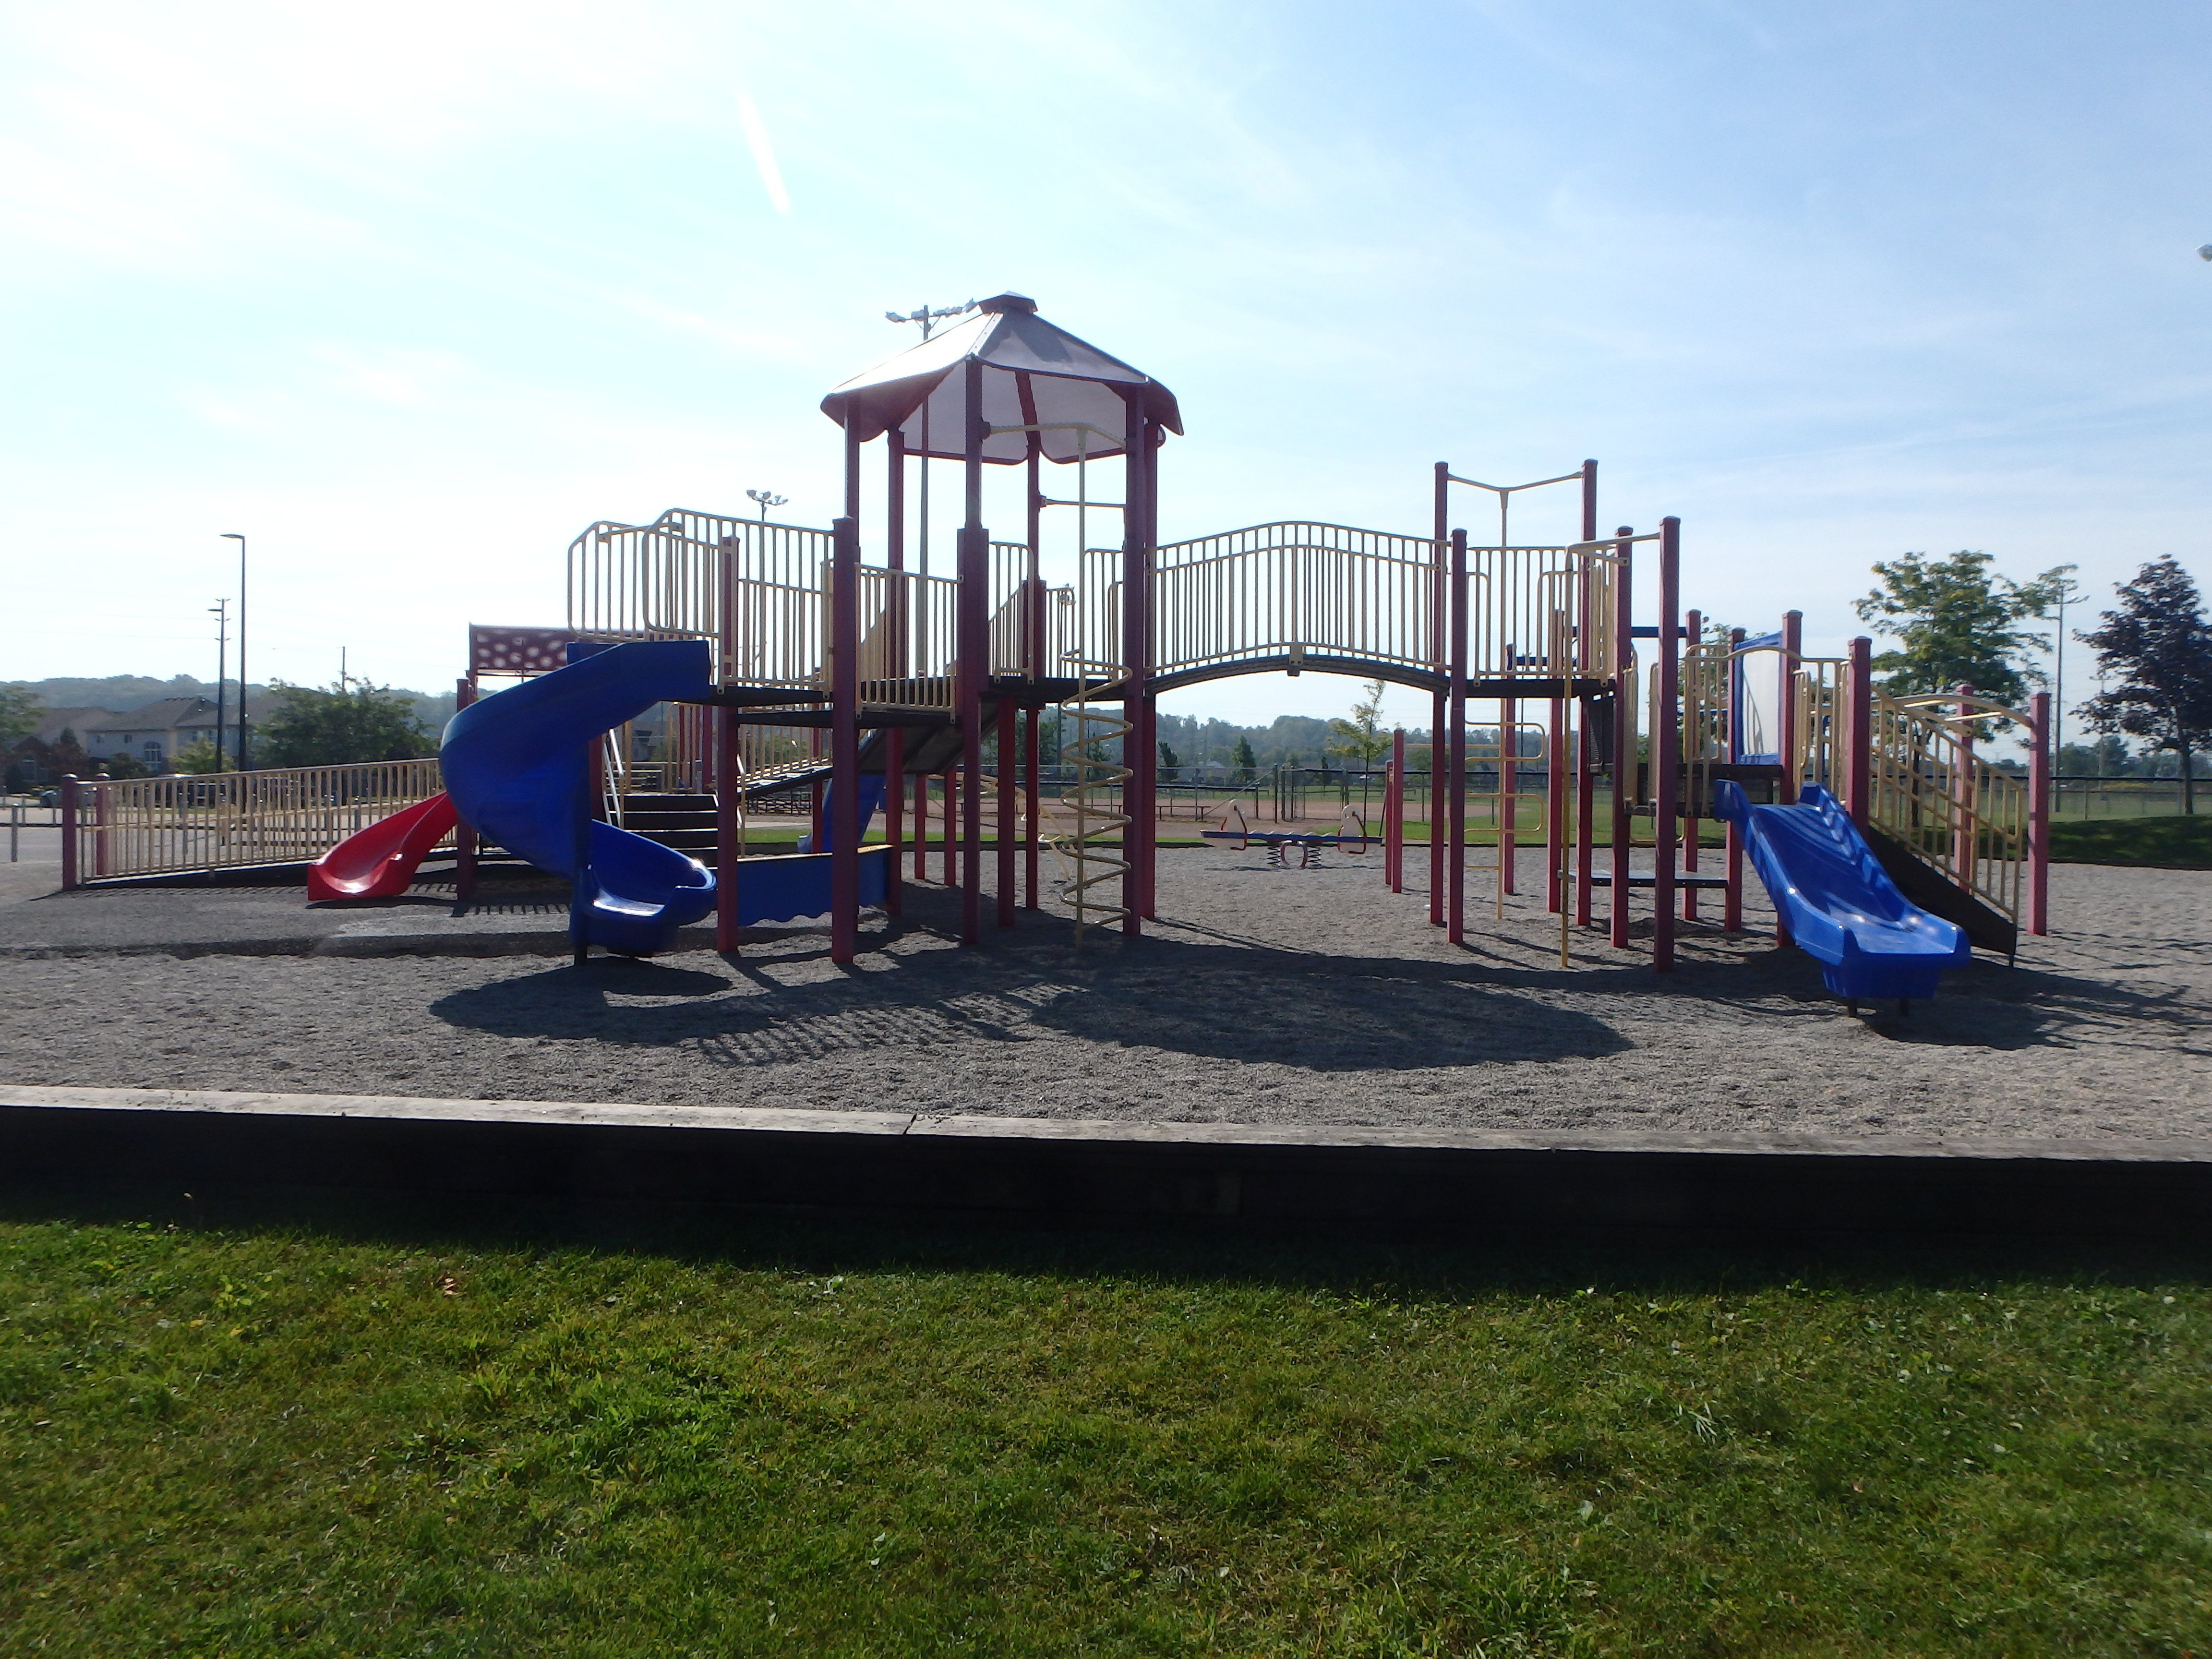 G:\!PARKS CEMETERIES FORESTRY AND HORTICULTURE\Parks-Inventory\Play-Equipment\Joe Mcaffery Park\Joe Mcaffery 3.JPG